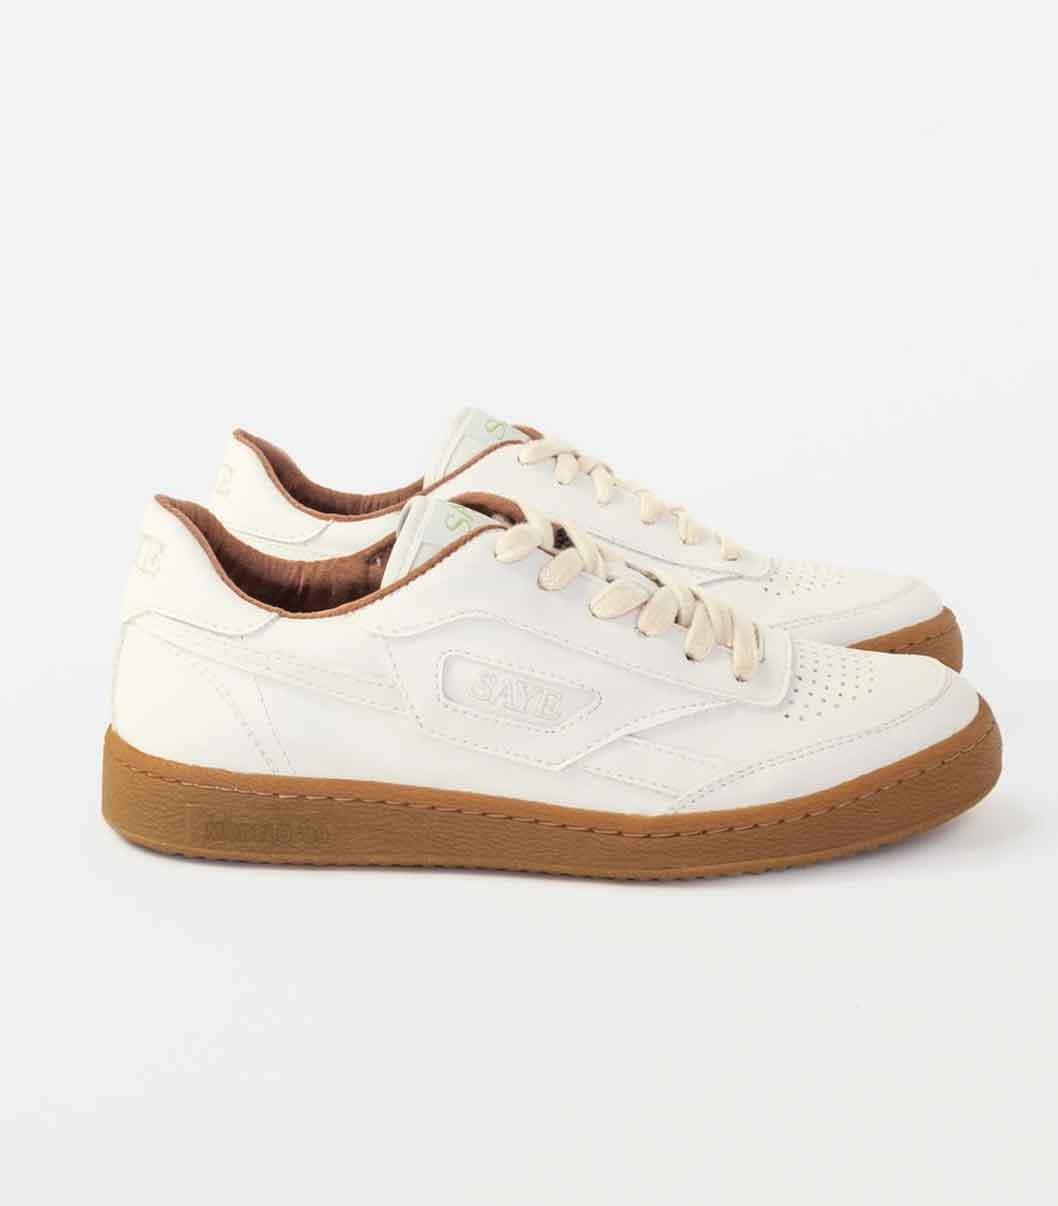 SAYE VEGAN SNEAKERS ECOLOOKBOOK